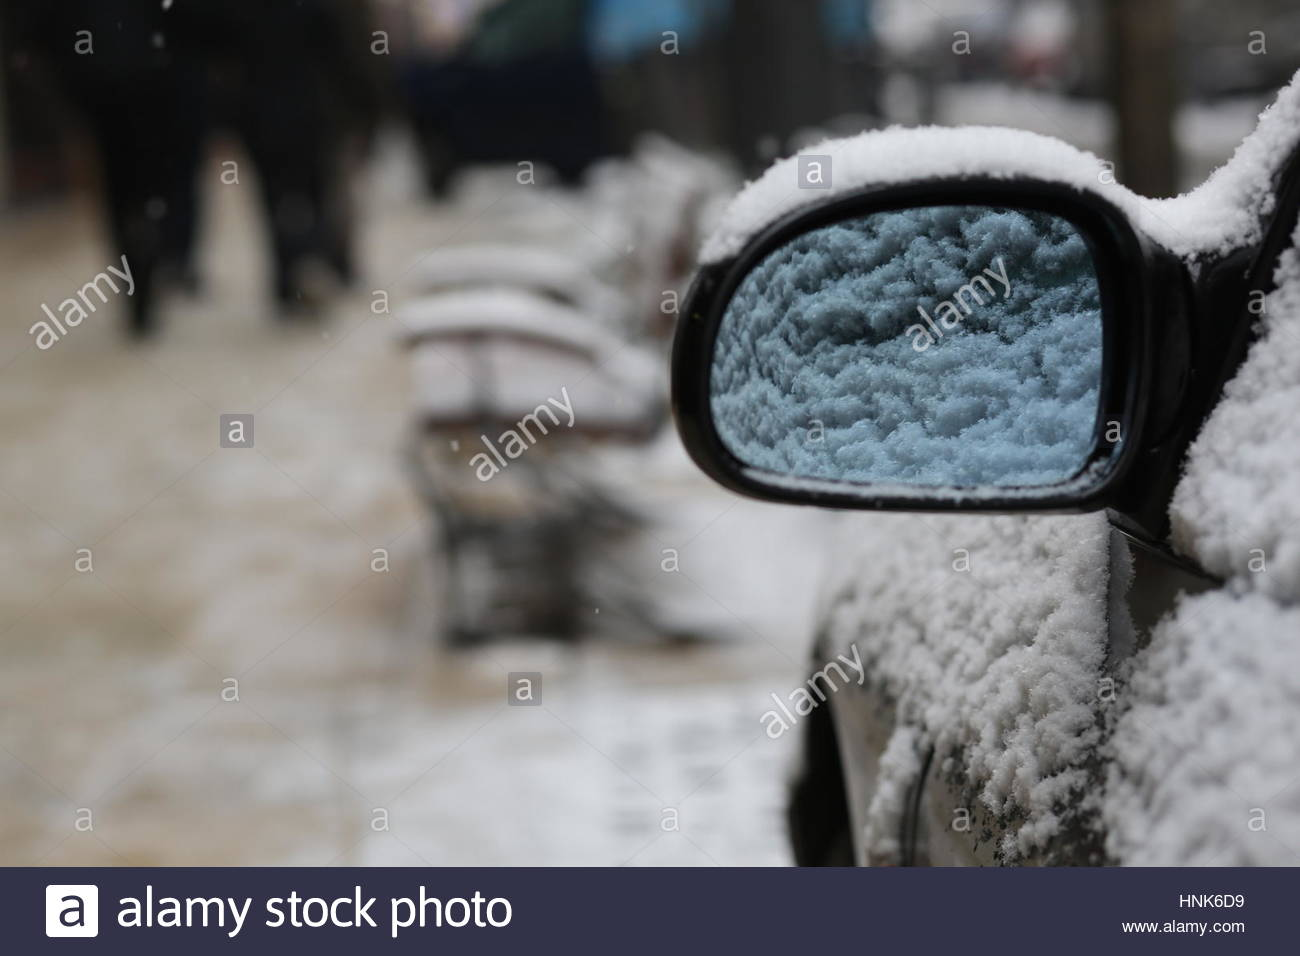 A car mirror and seats covered in snow after a heavy winter snowfall in downtown Budapest, Hungary - Stock Image